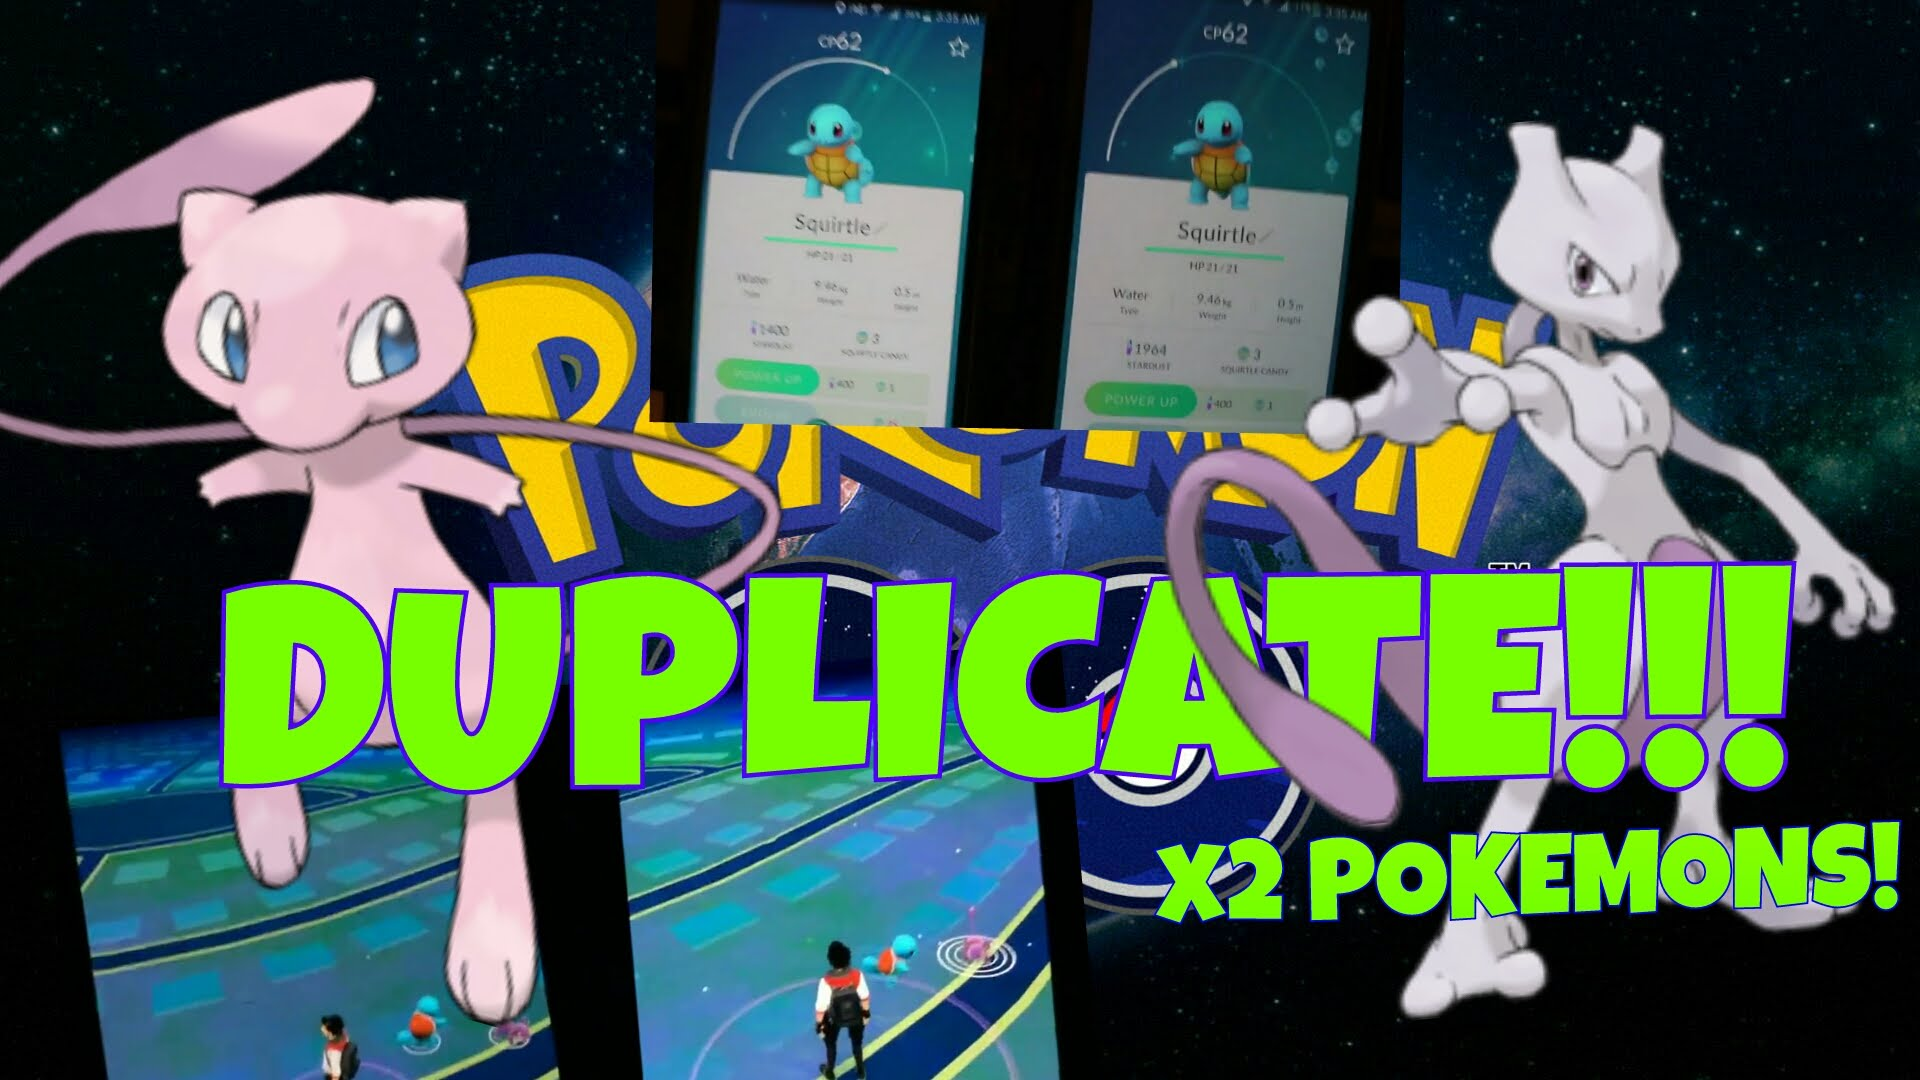 pokemon go duplicate pokemones 2016